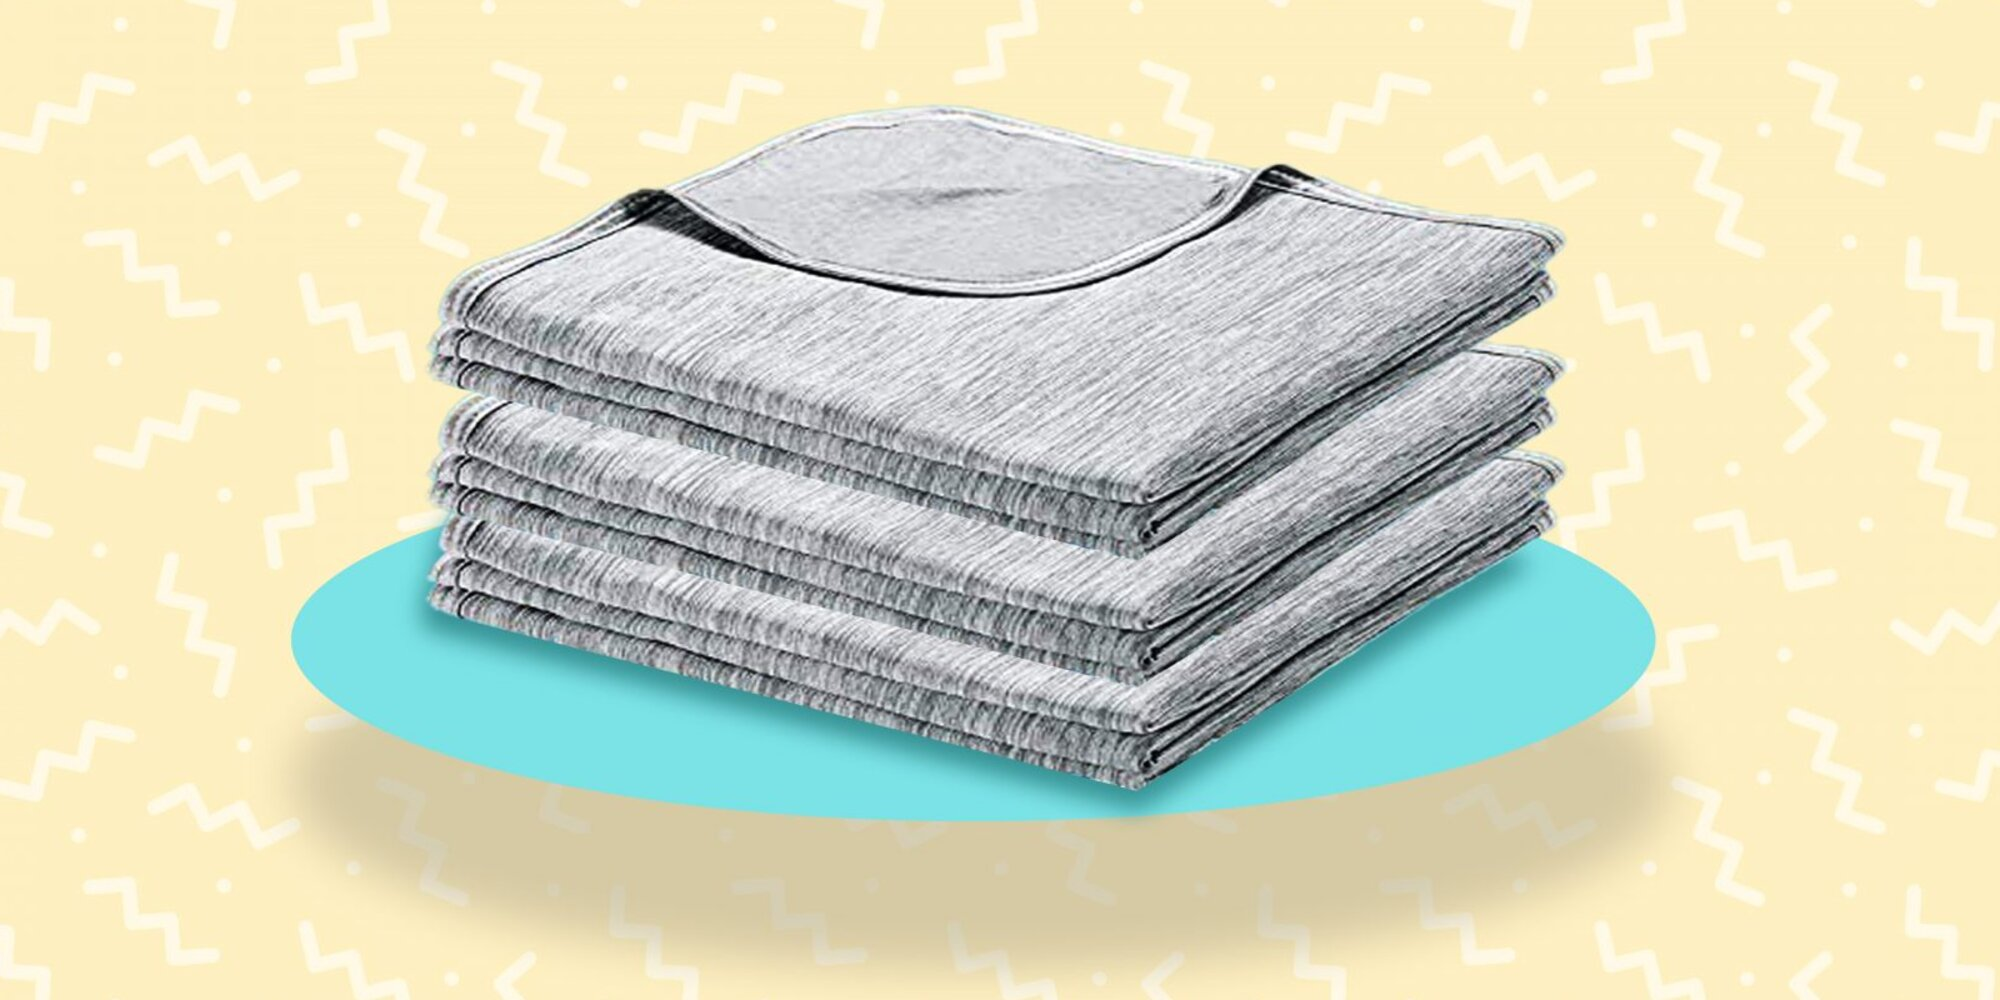 This 'Magic' Blanket Makes Skin Feel 5 Degrees Cooler—and Shoppers Say It's Perfect for Hot Flashes